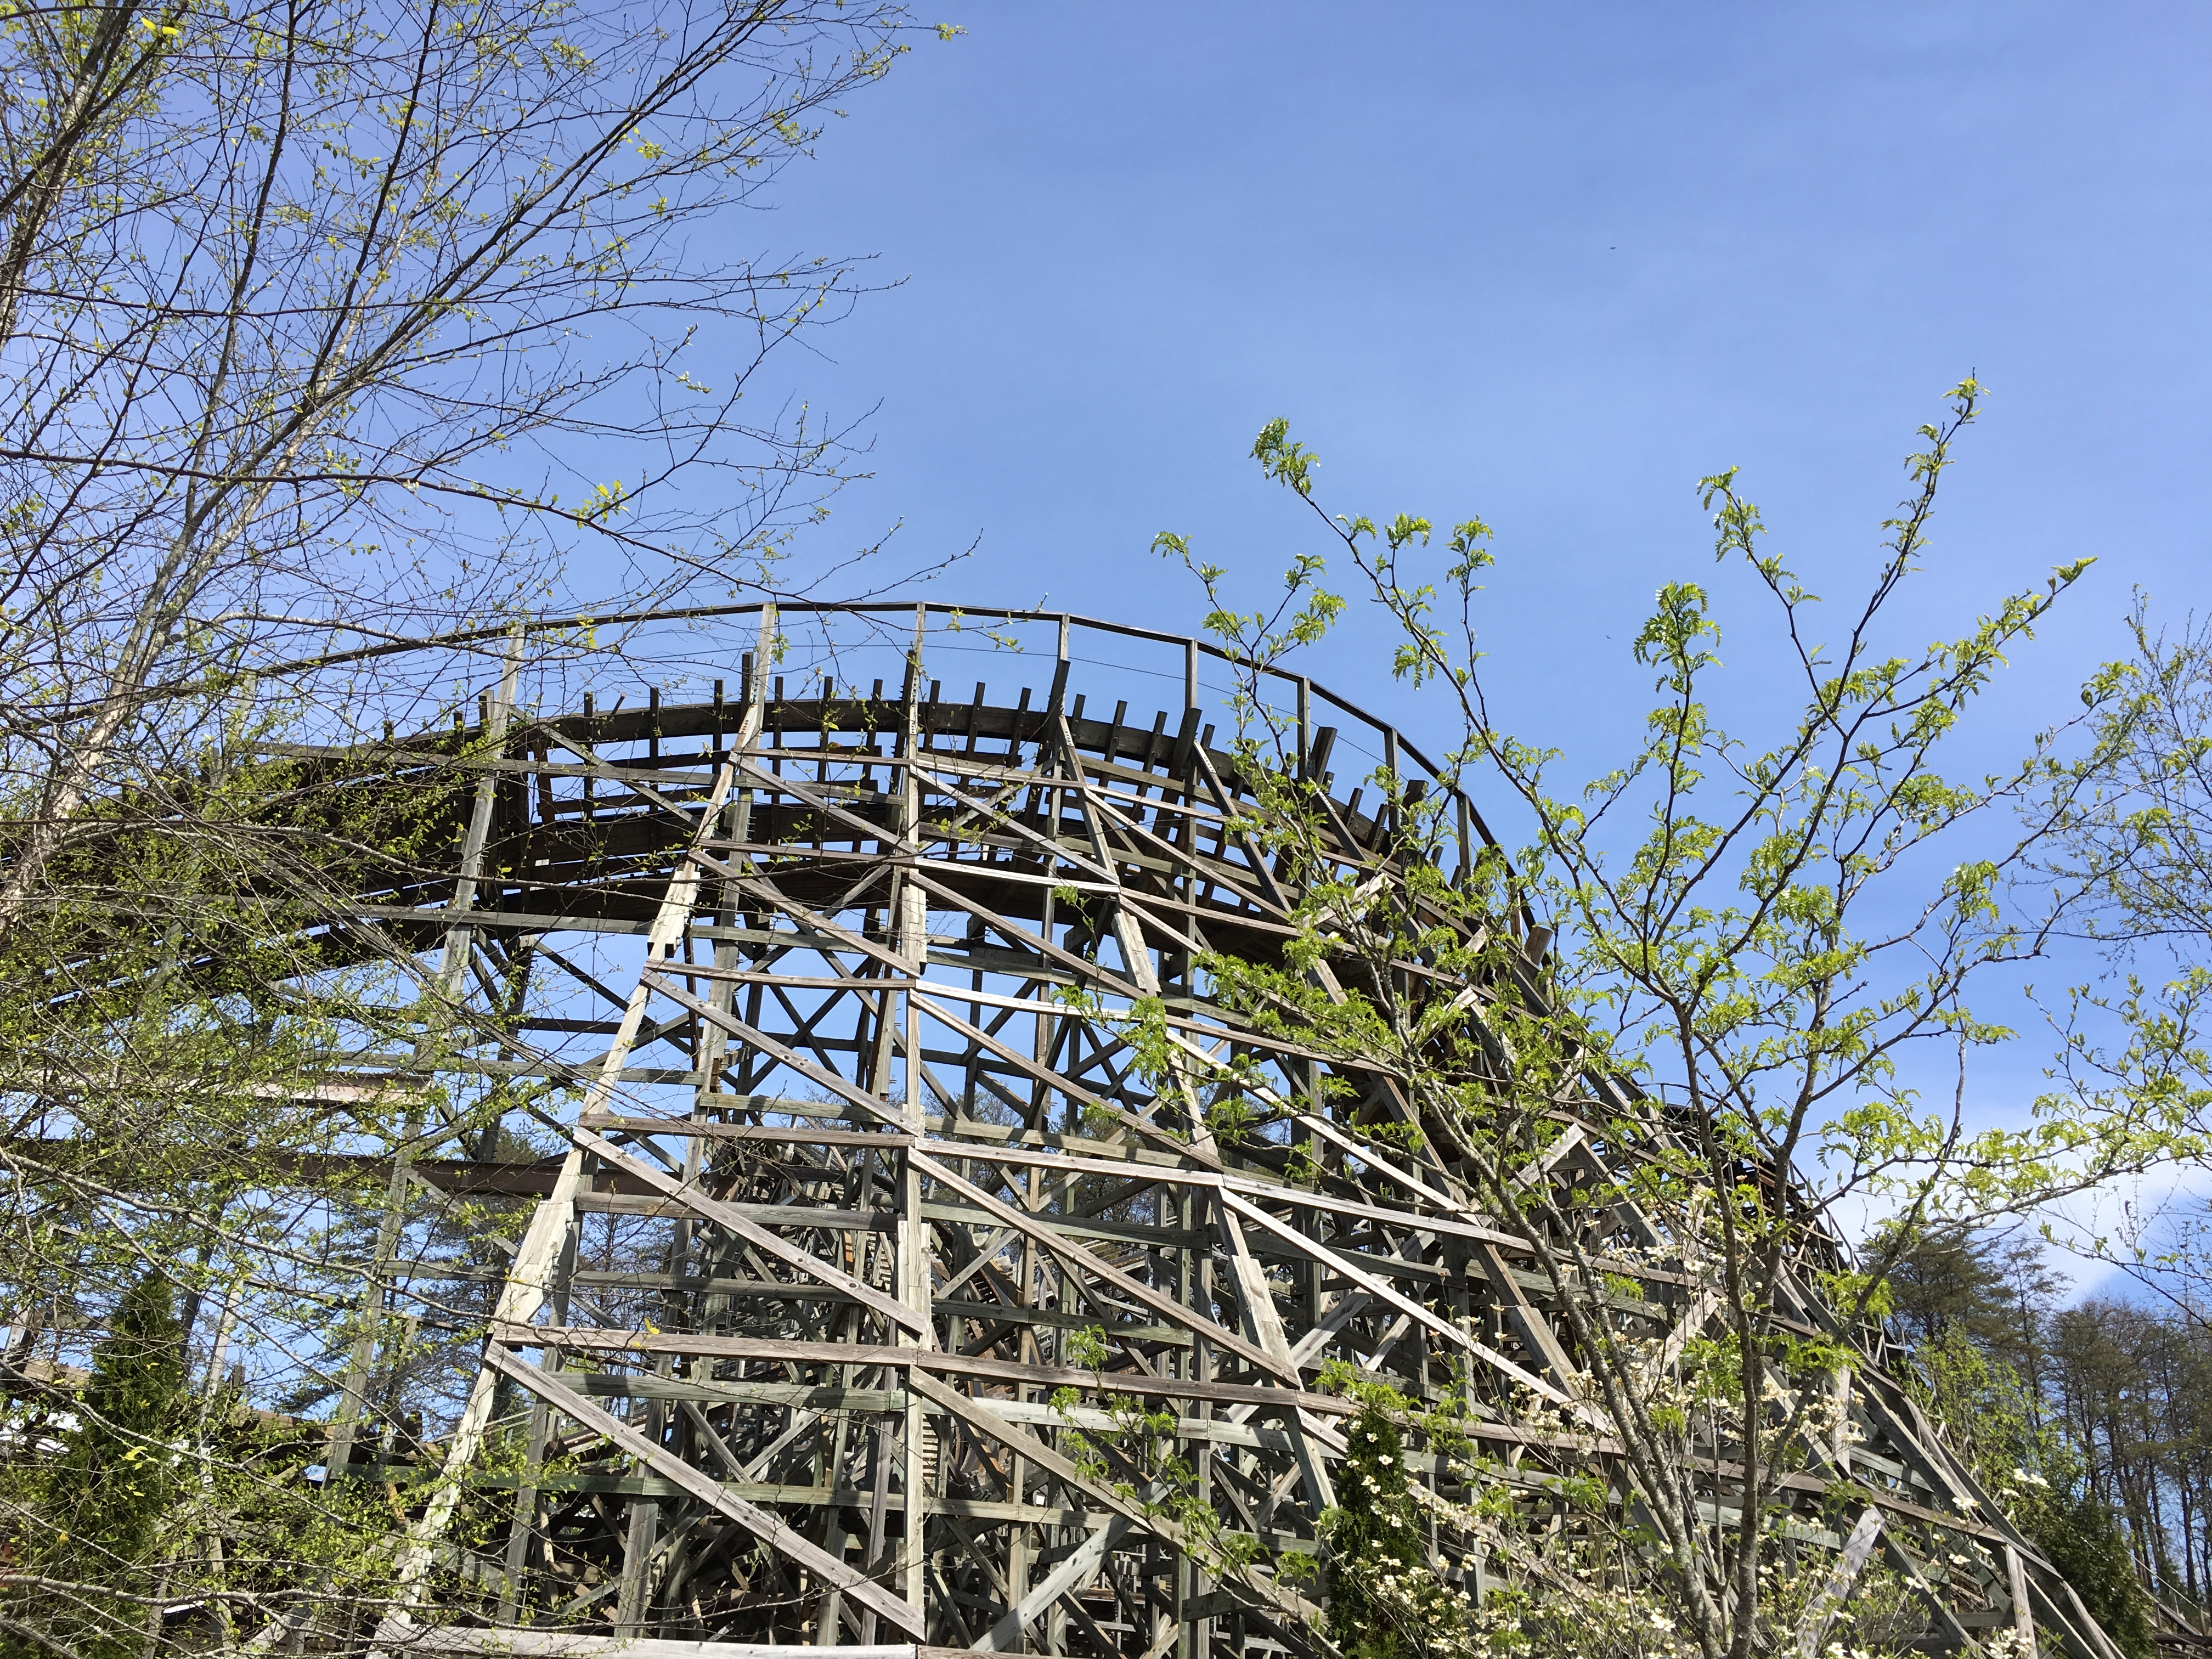 Rollercoasters and Wasps at Dollywood - Travels with Paprika